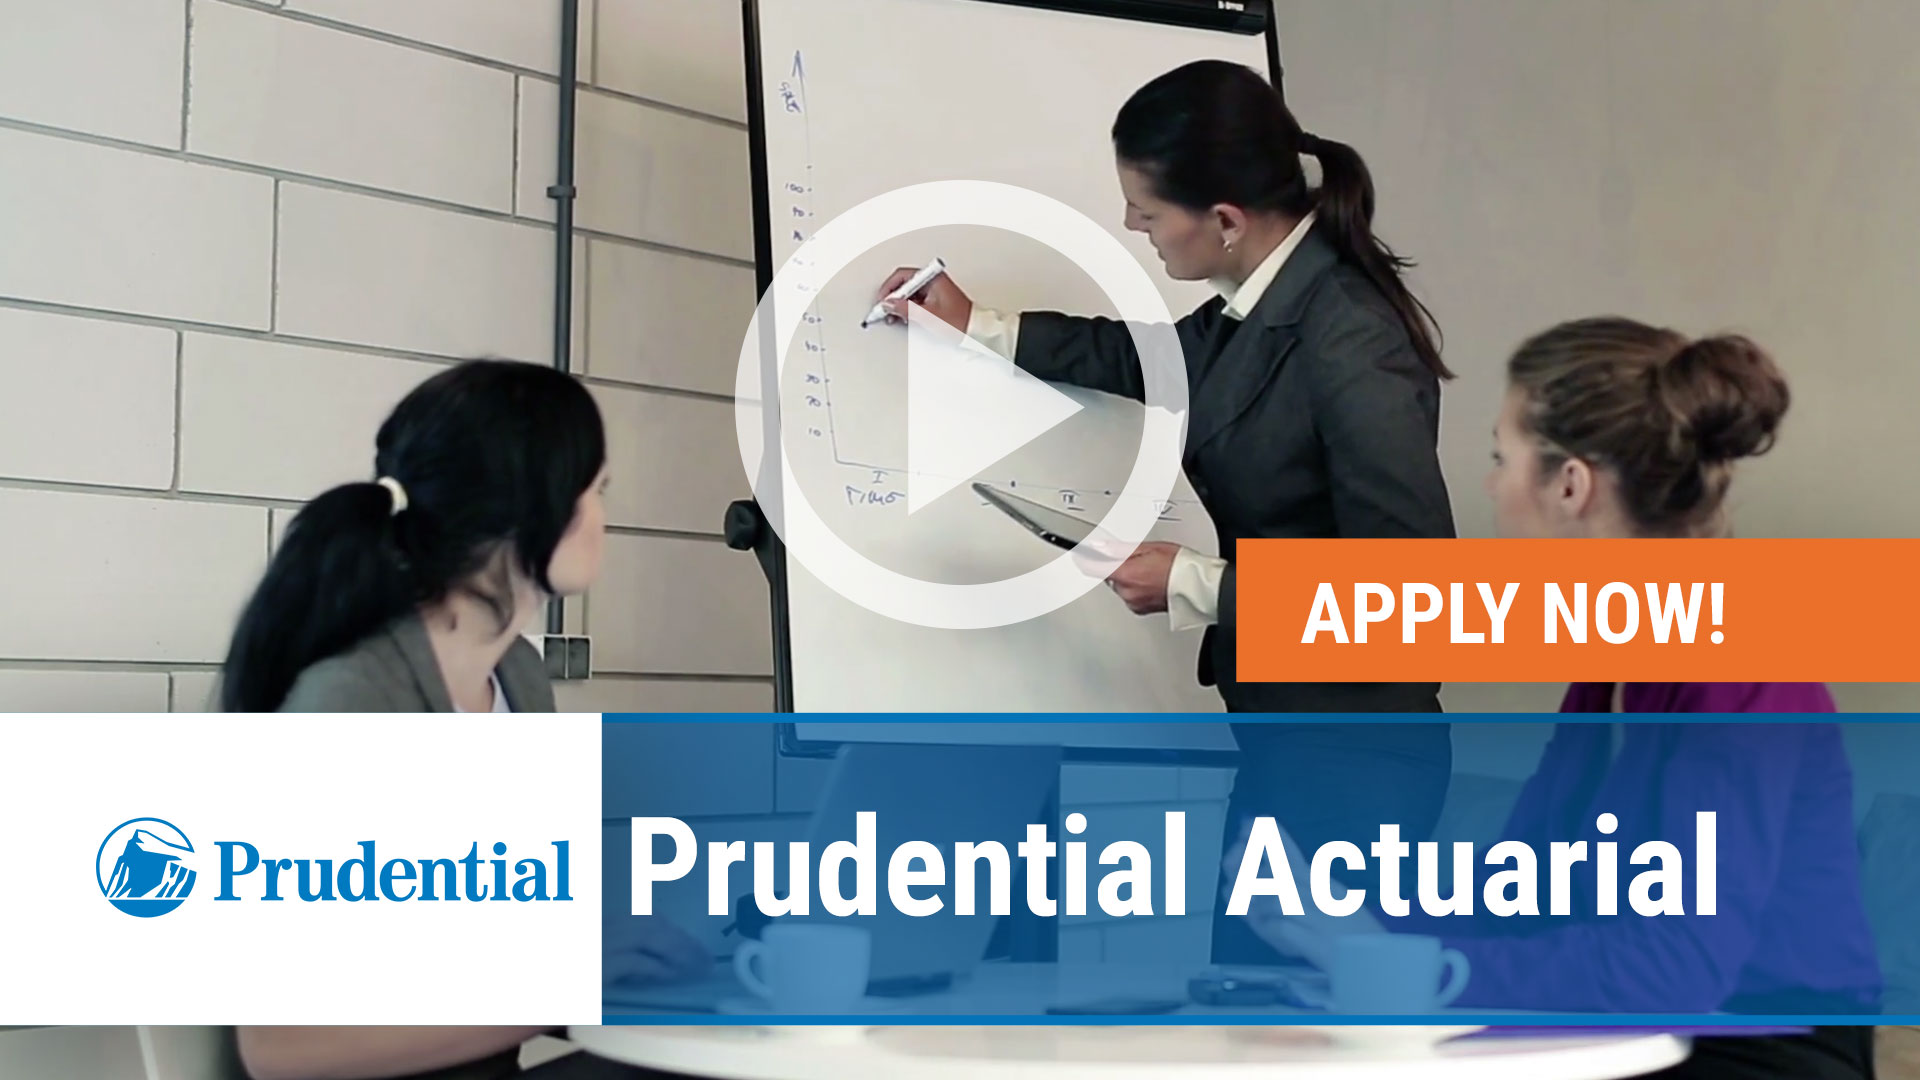 Watch our careers video for available job opening Prudential Actuarial in Newark NJ, Dresher PA, Hartford CT